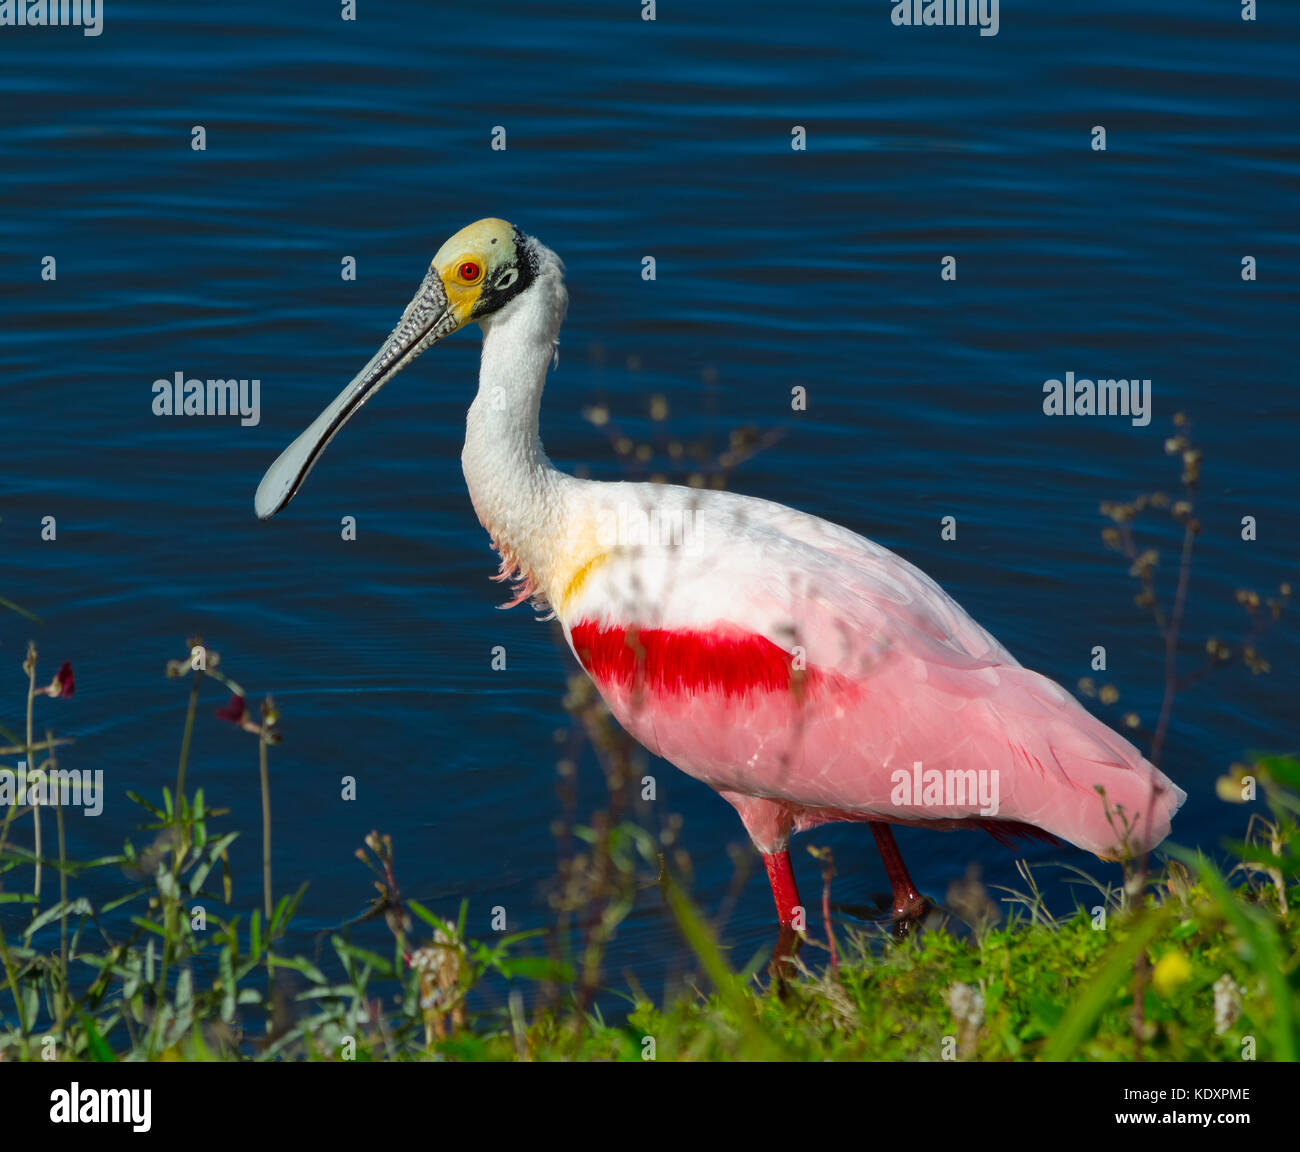 The roseate spoonbill (Platalea ajaja) is a very colorful wading bird recognized by its long and flat spoon-shaped - Stock Image